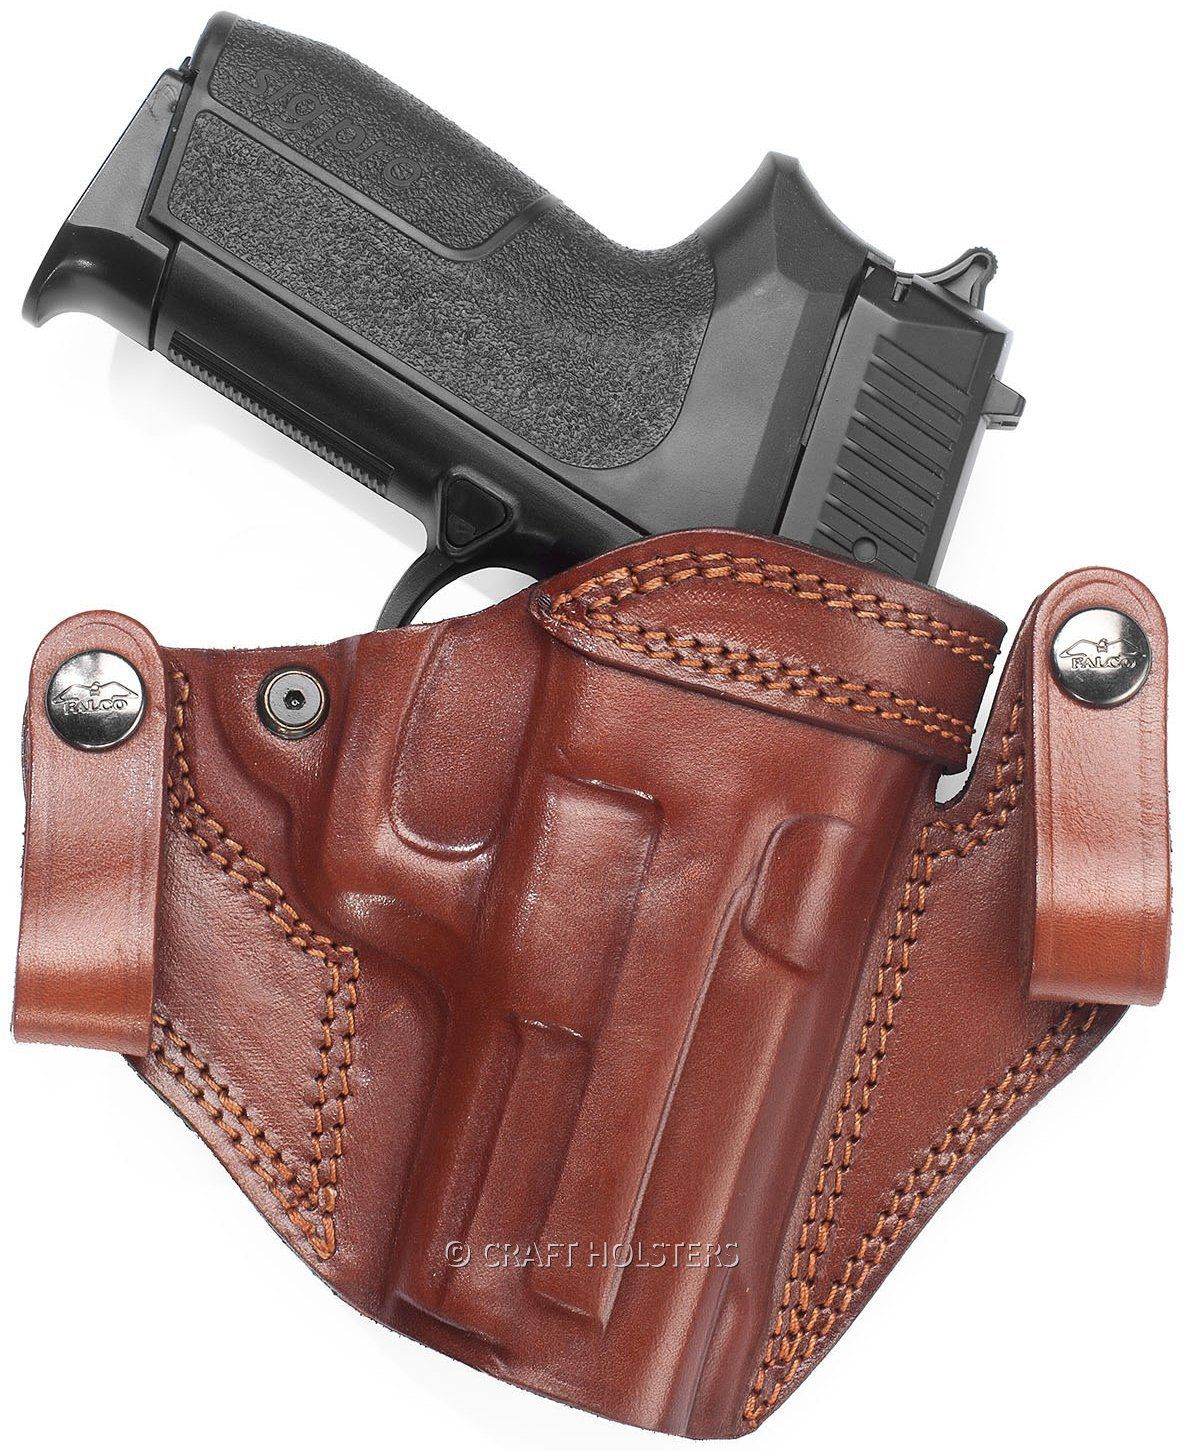 46+ Craft shoulder holsters review ideas